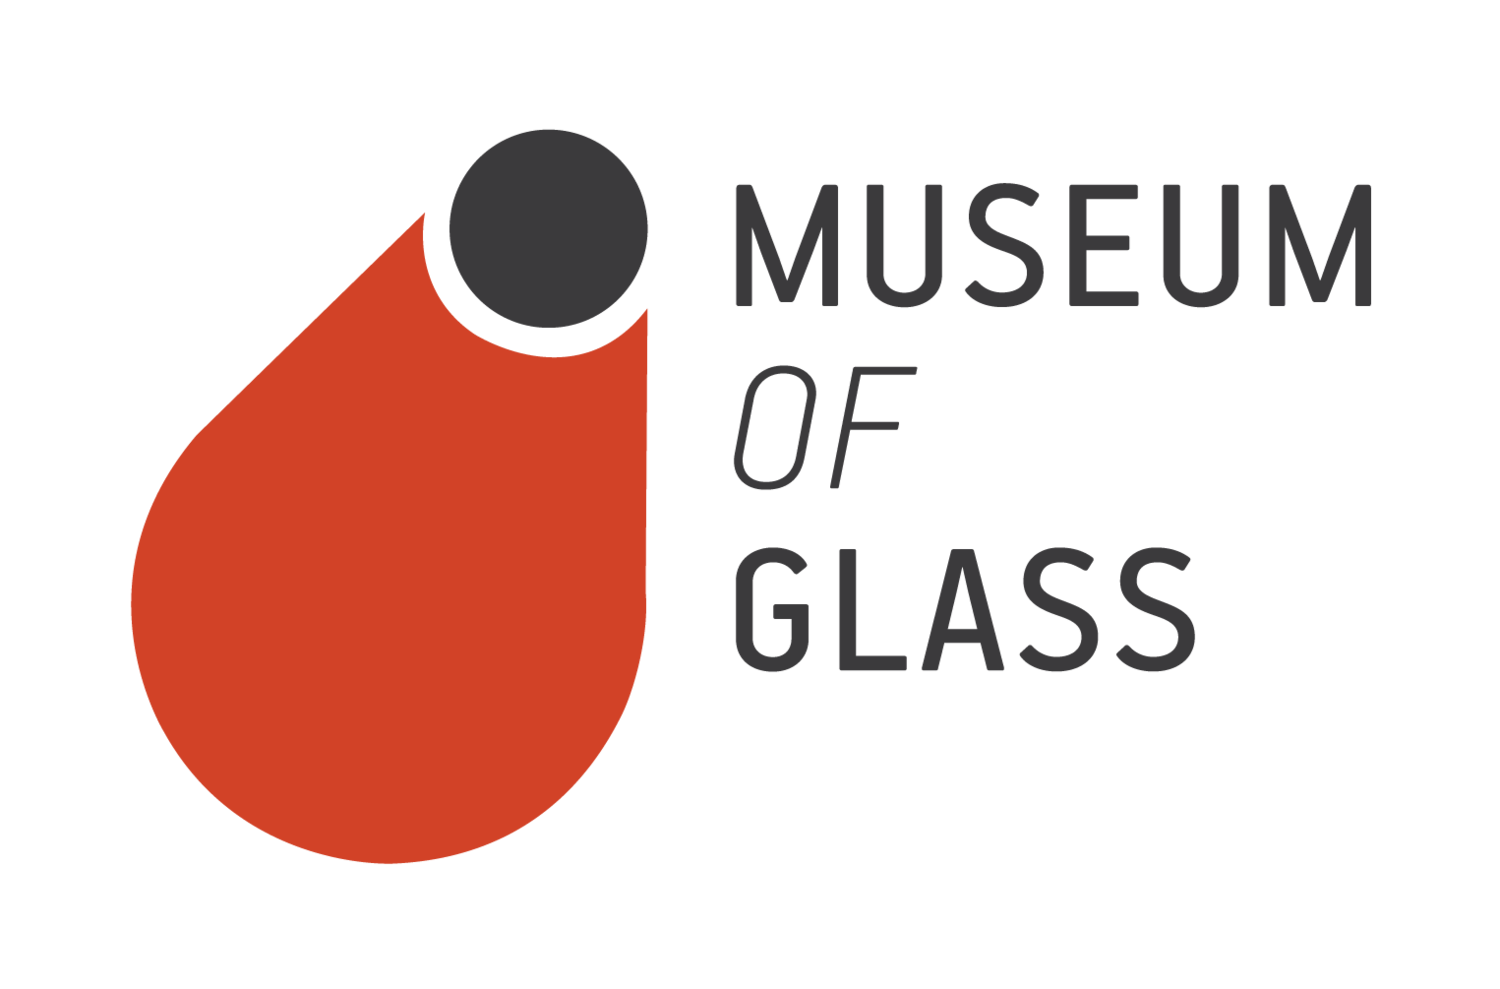 Museum of Glass logo which is a black circle and an orange petal shape.